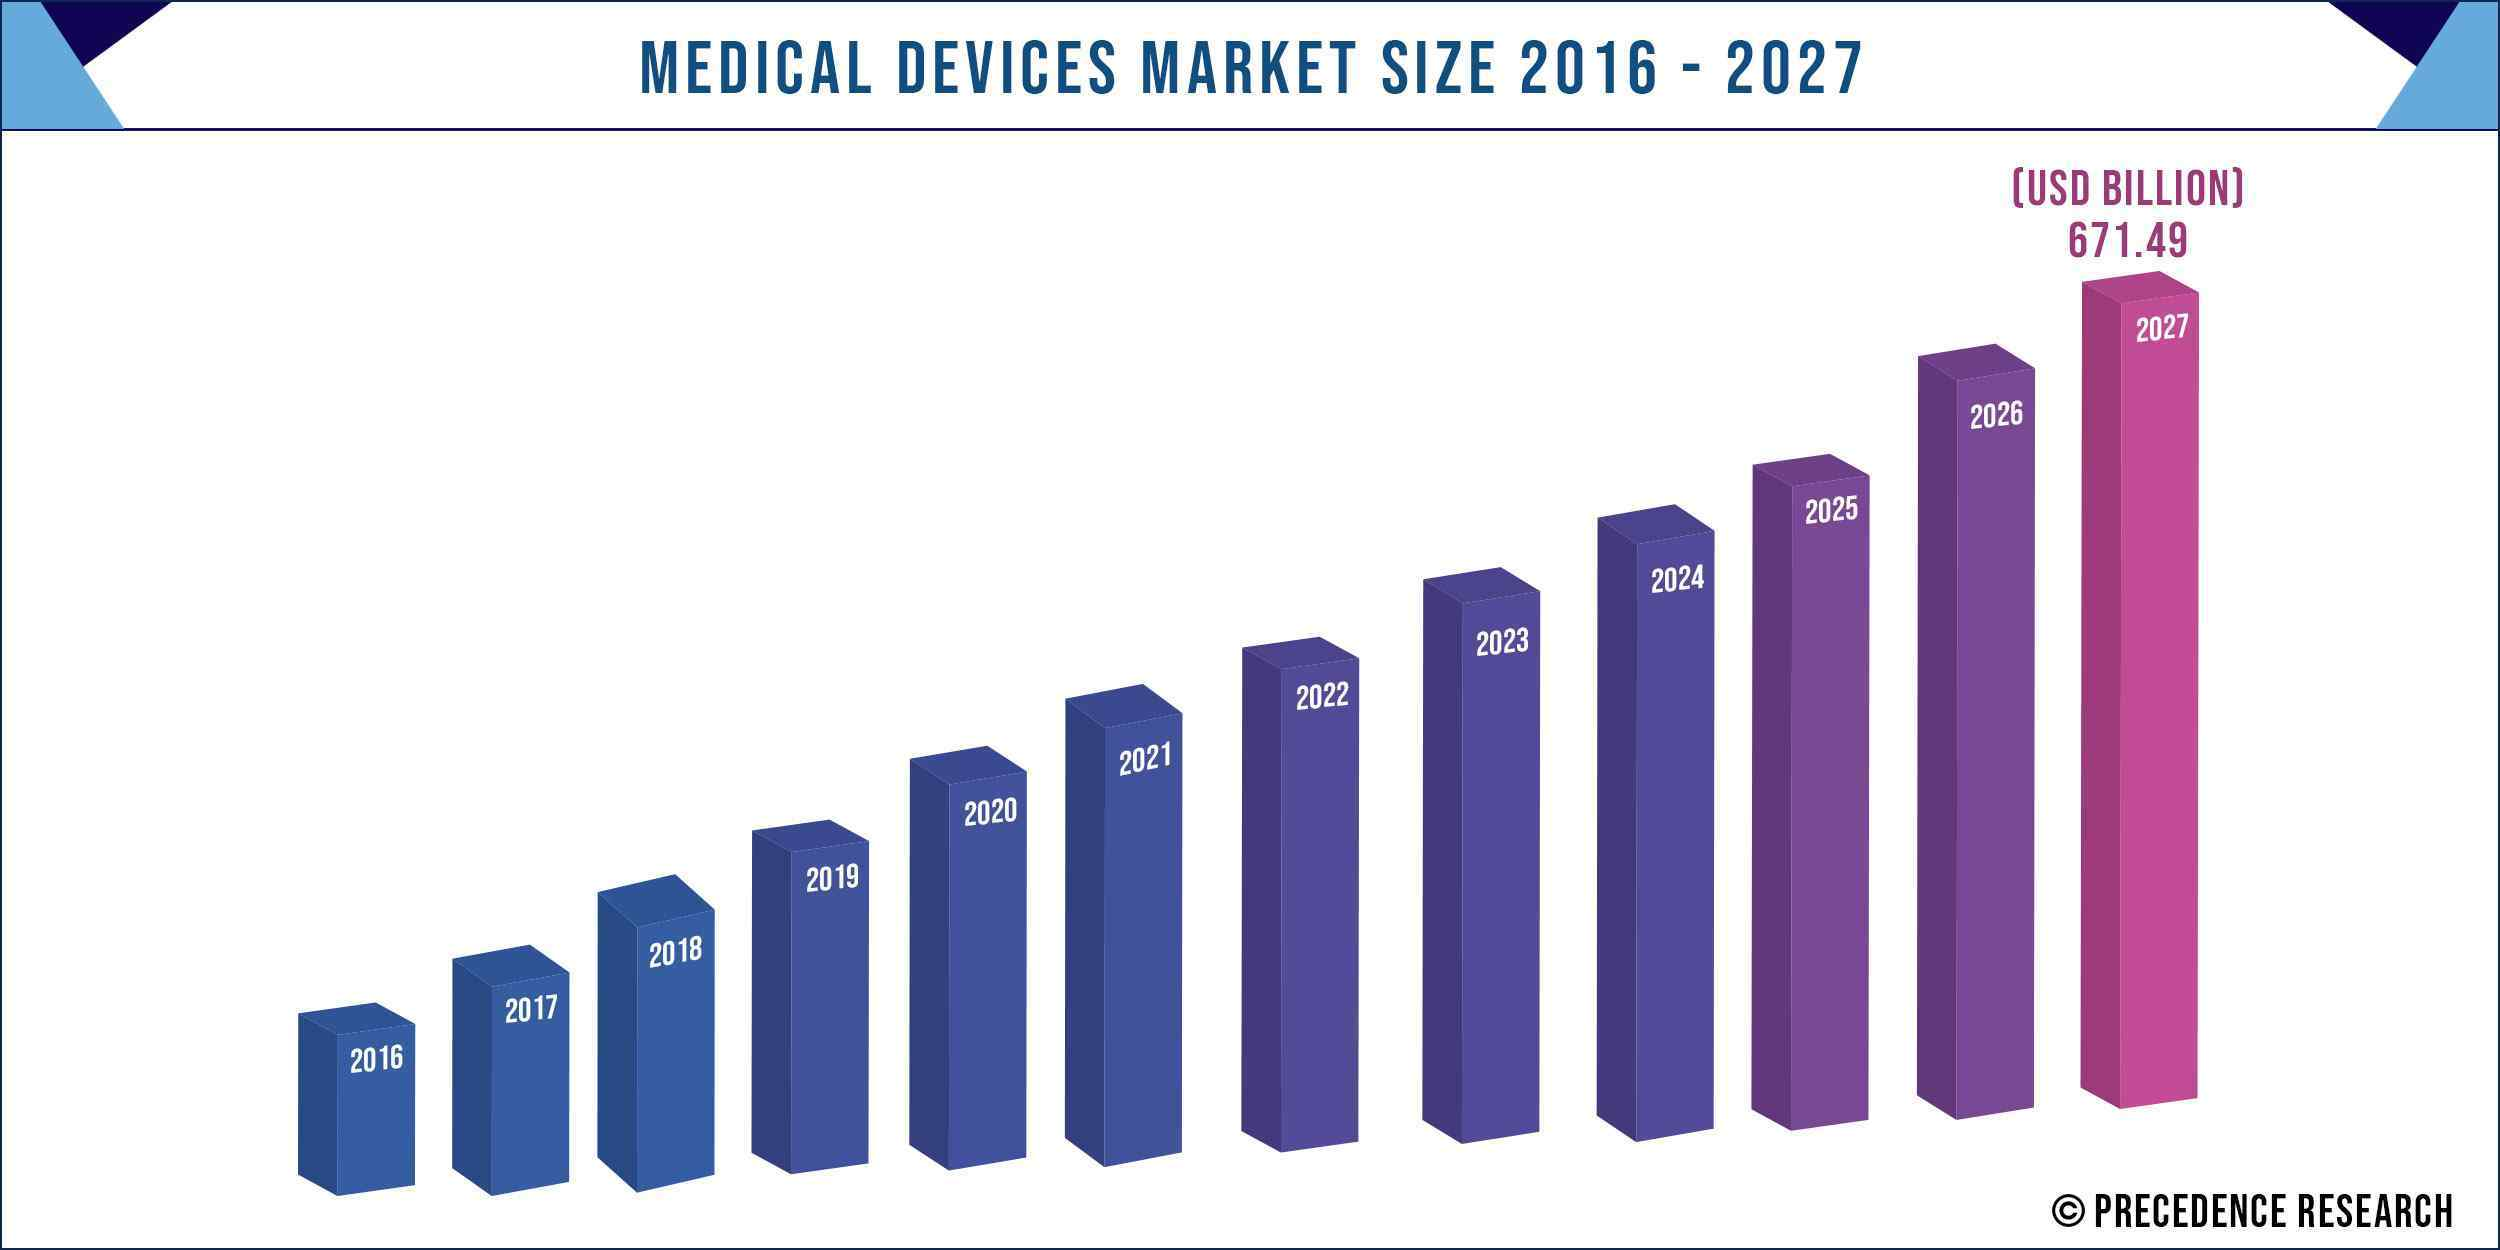 Medical Devices Market Size 2016 to 2027